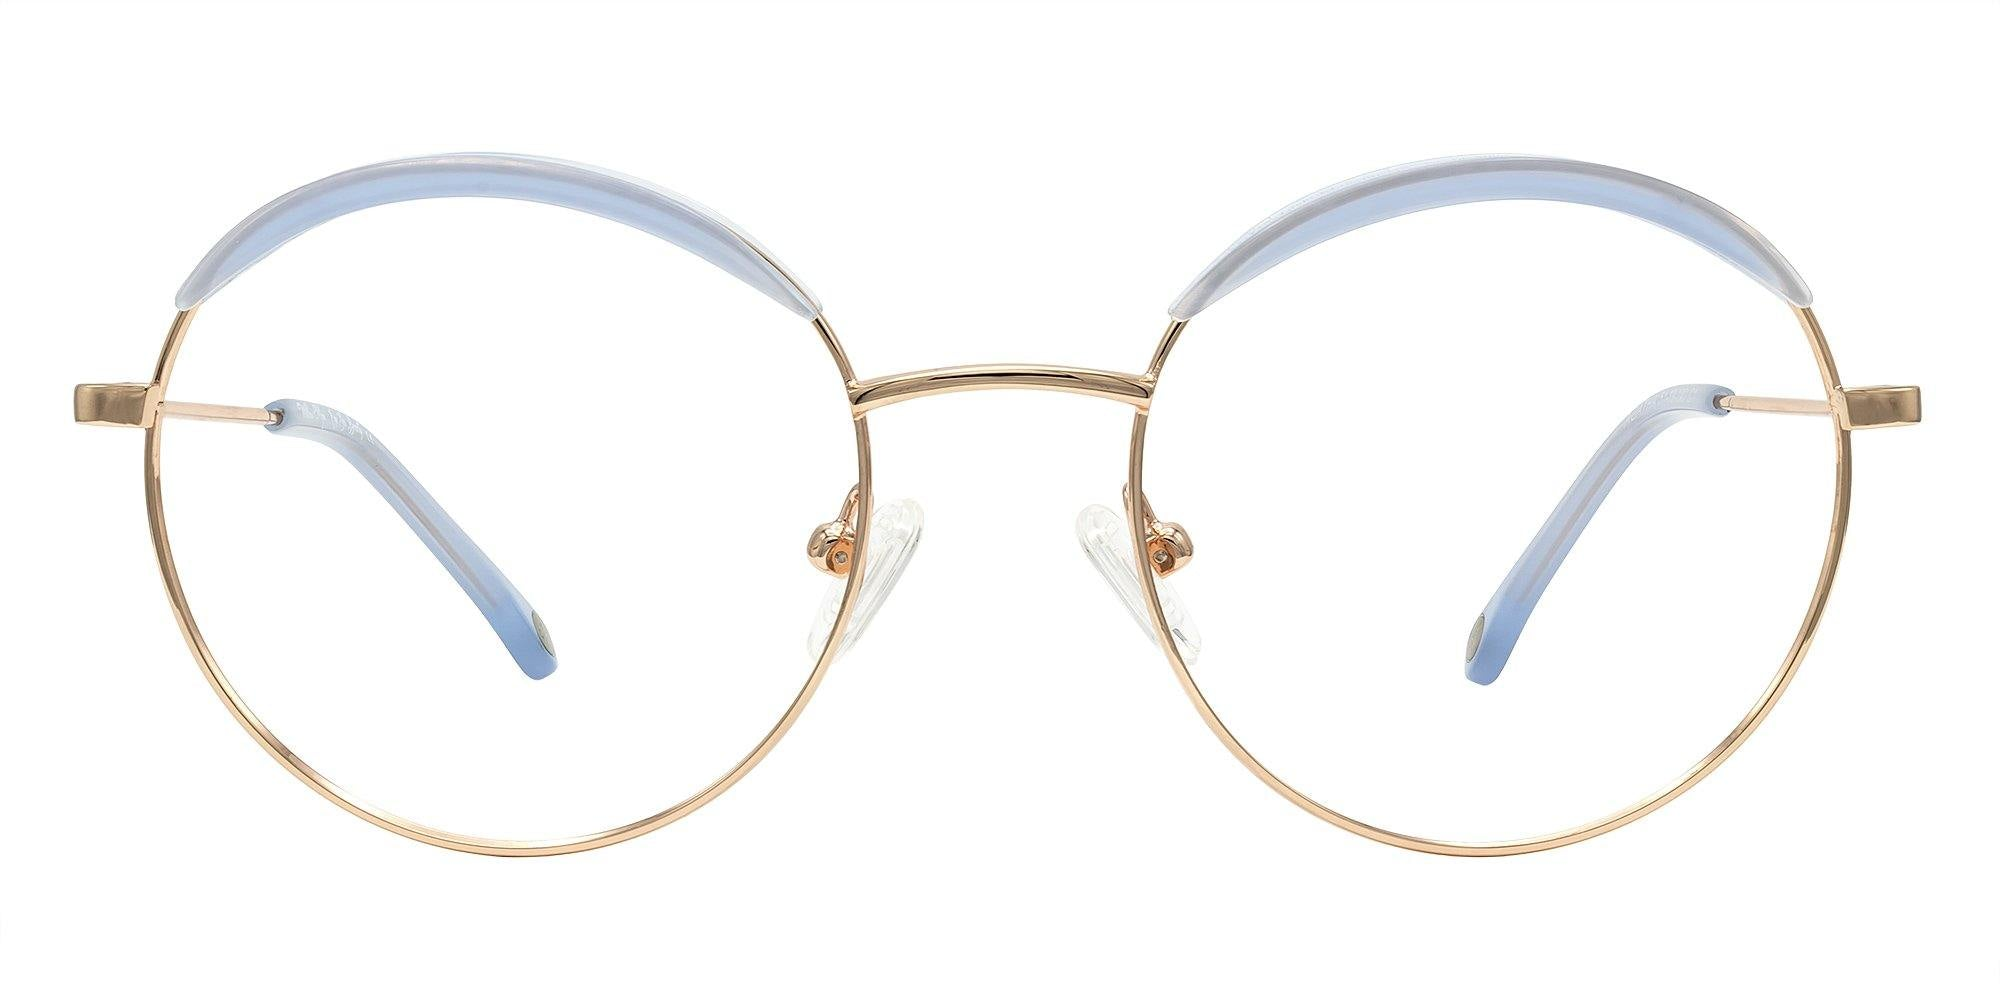 AGATHA - Willow Mae Eyewear